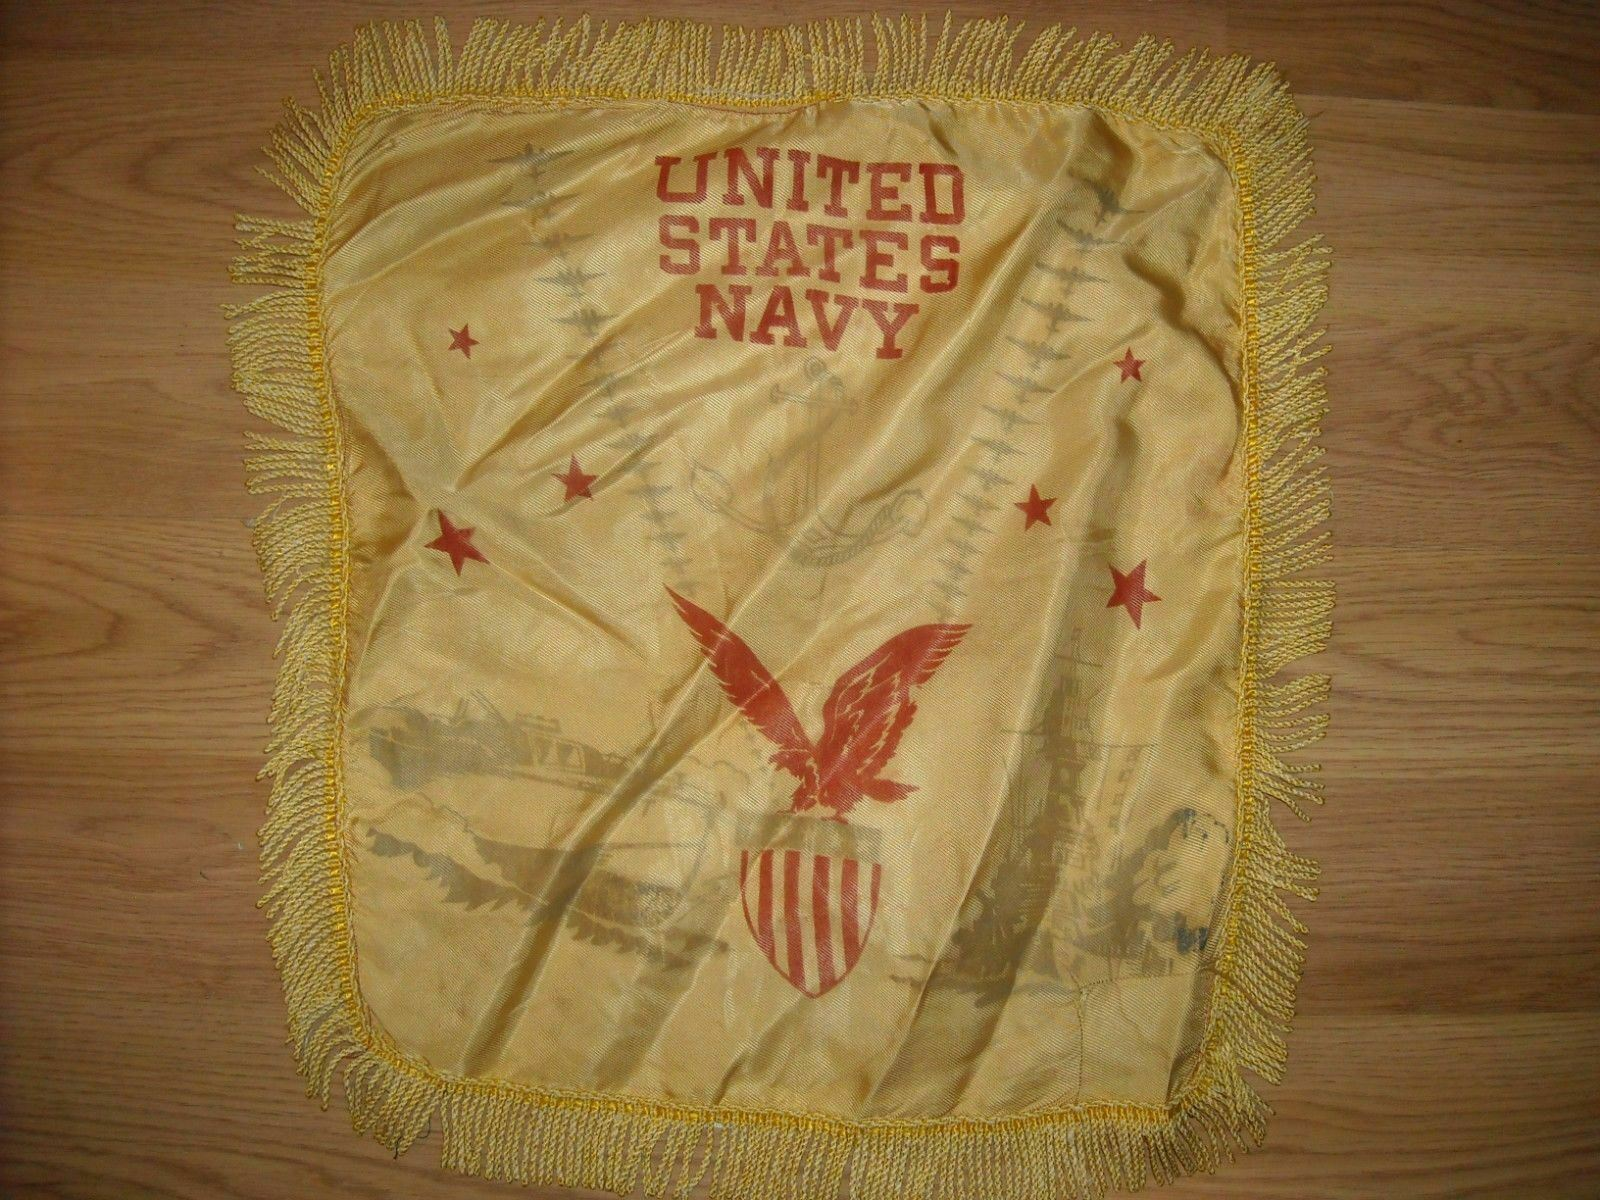 VTG 40 WWII US MILITARY US UNITED STATES NAVY PILLOW COVER CASE